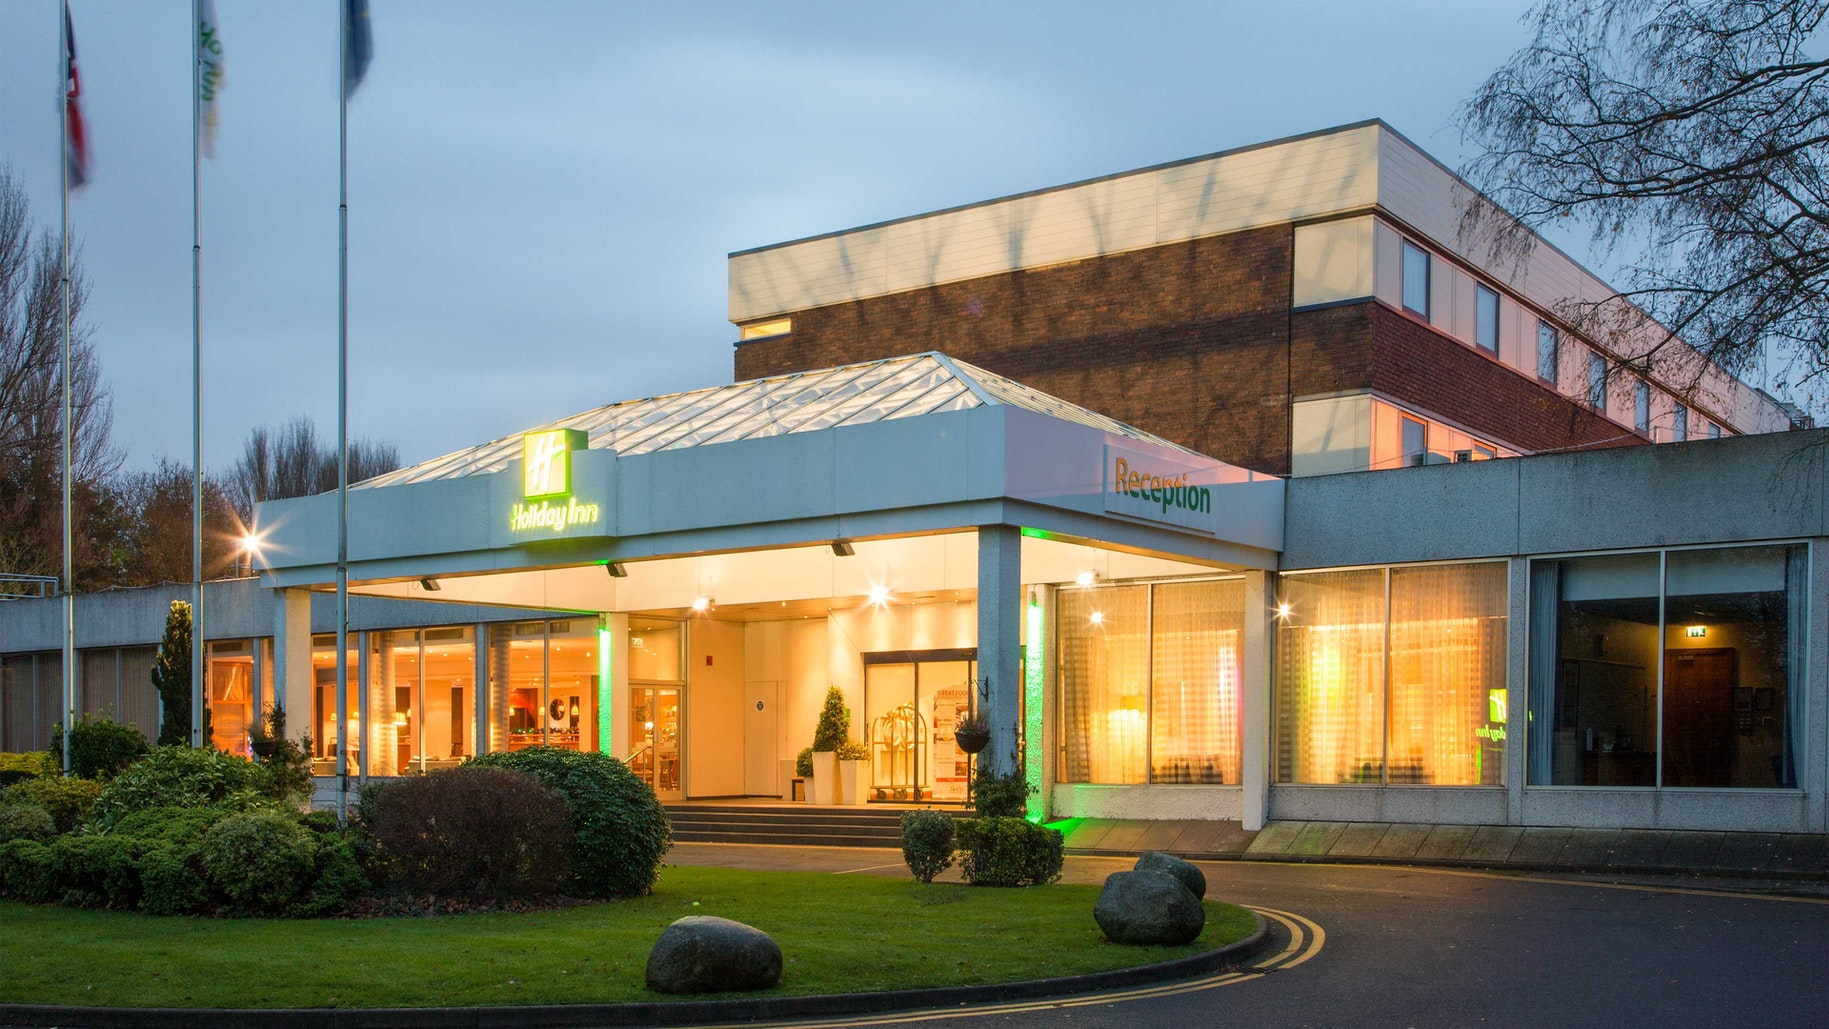 Holiday Inn Shepperton near Chessington World of Adventures Resort